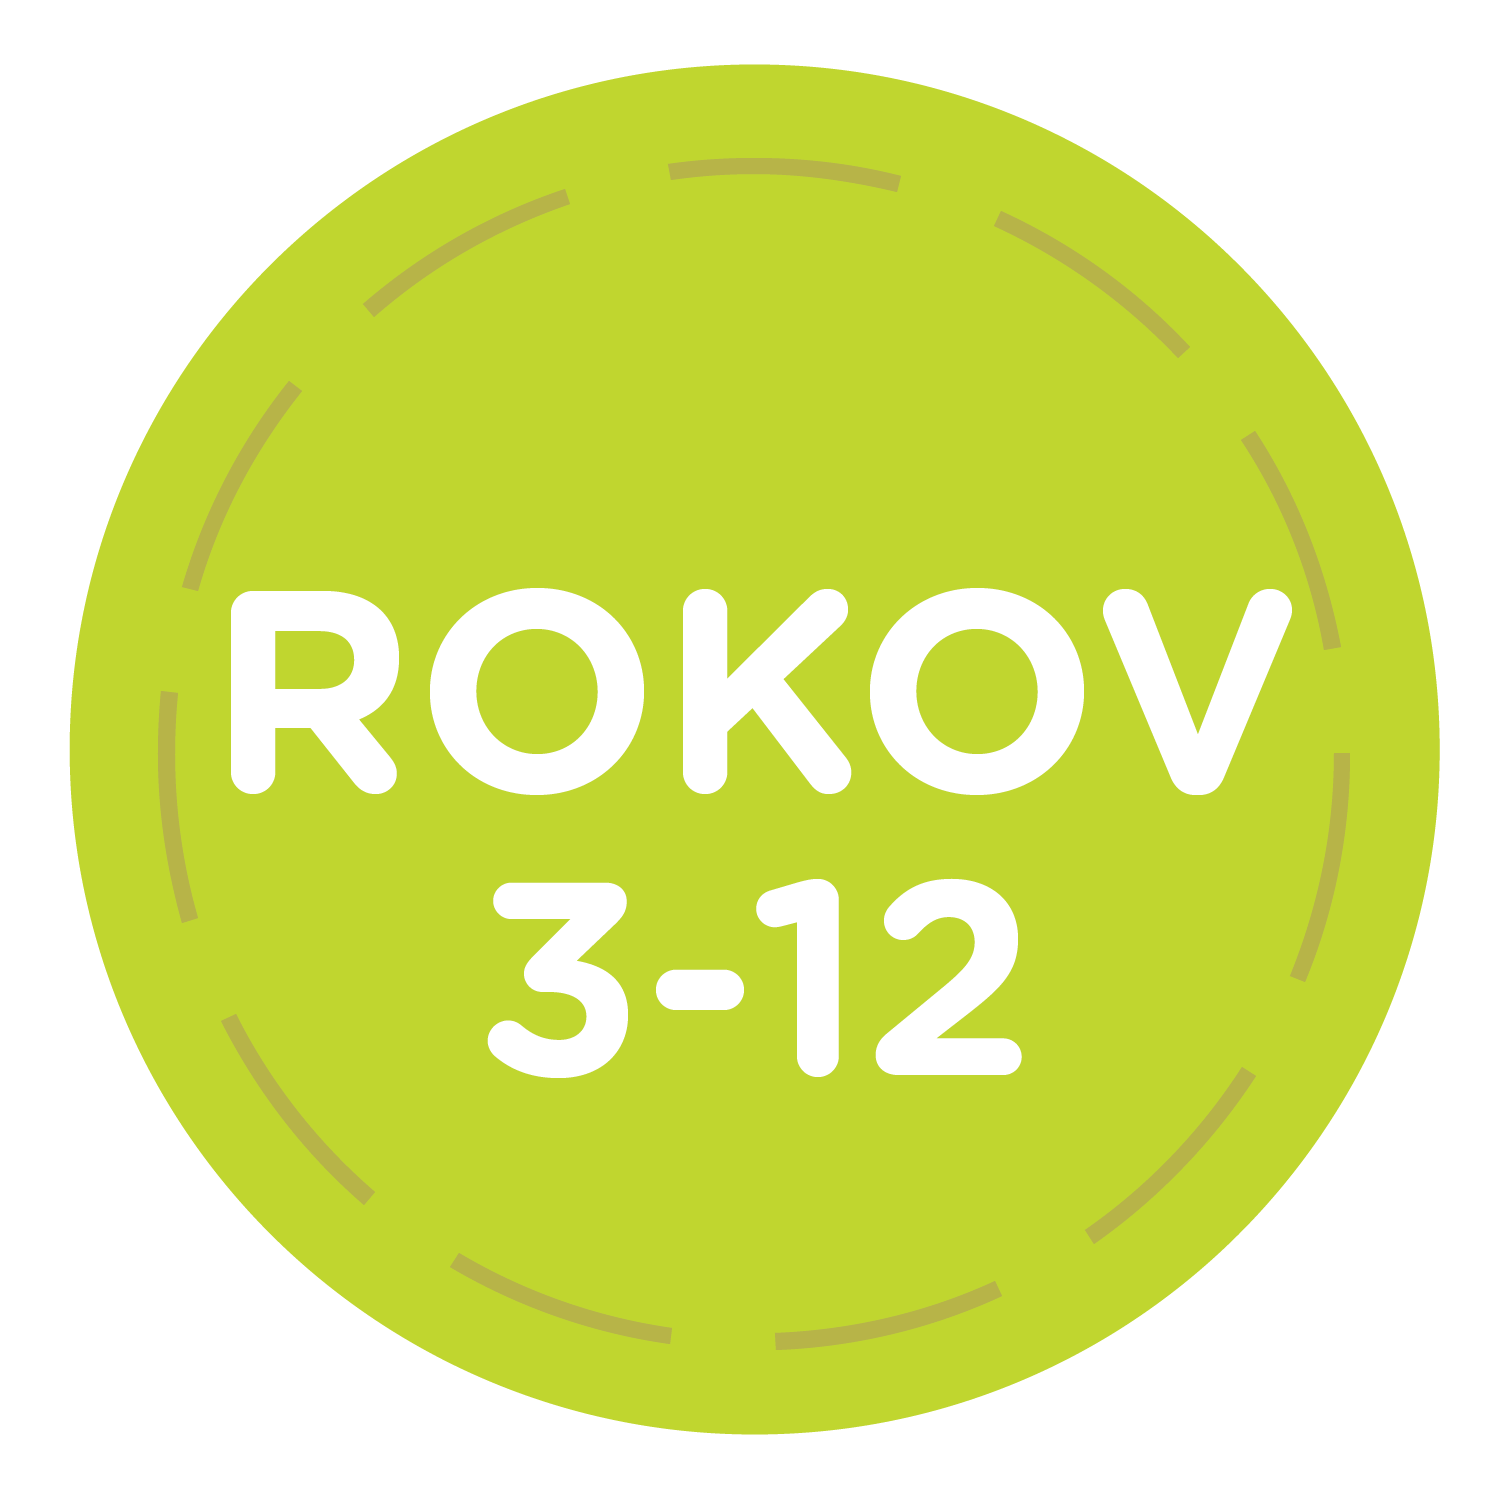 Age-Group-Circles-With-Text_Camps_3-12yrs_Slovak-06